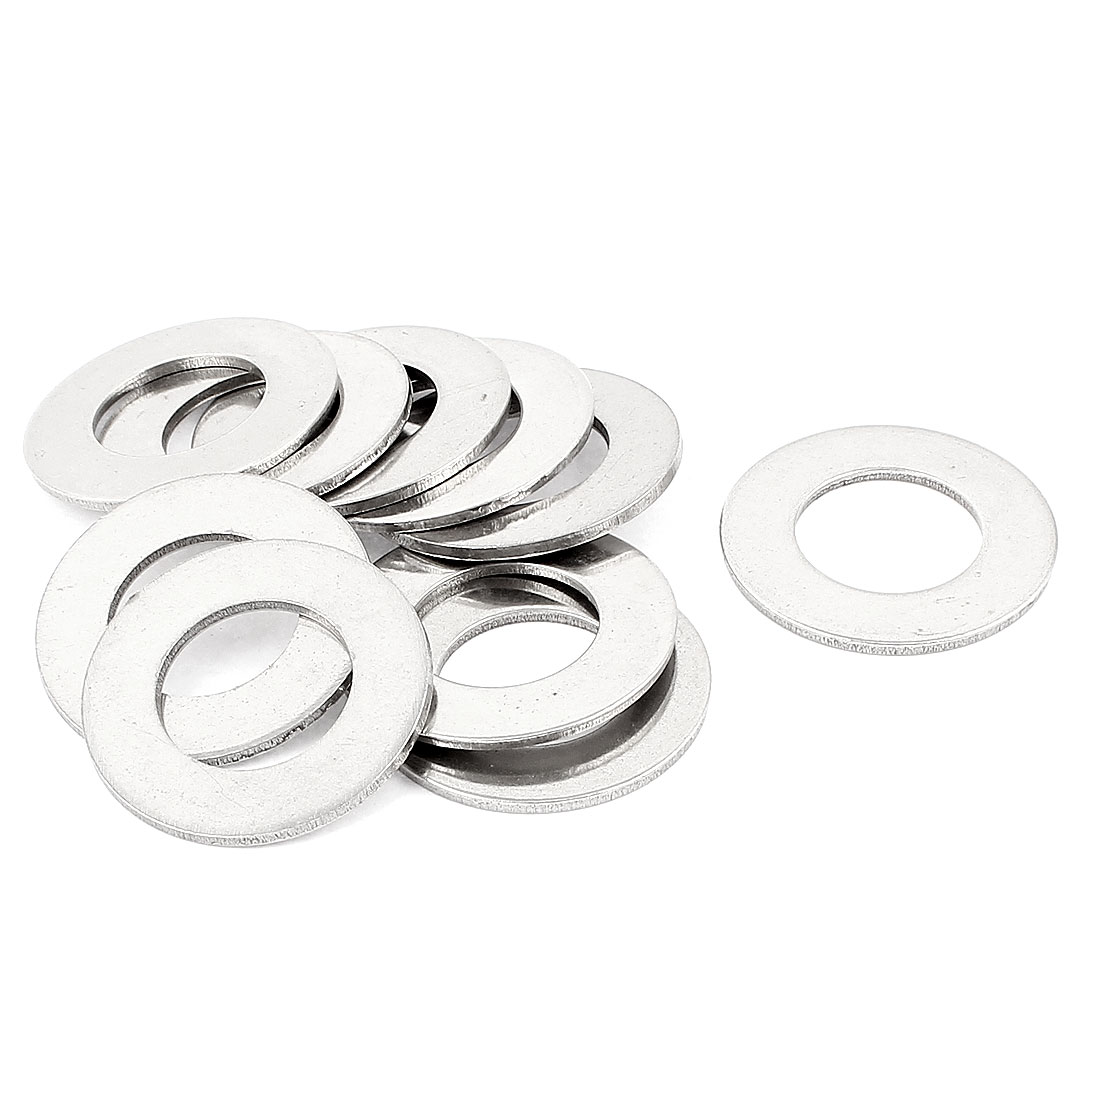 M24 24mm Inner Dia 304 Stainless Steel Plain Finish Flat Washer 10pcs